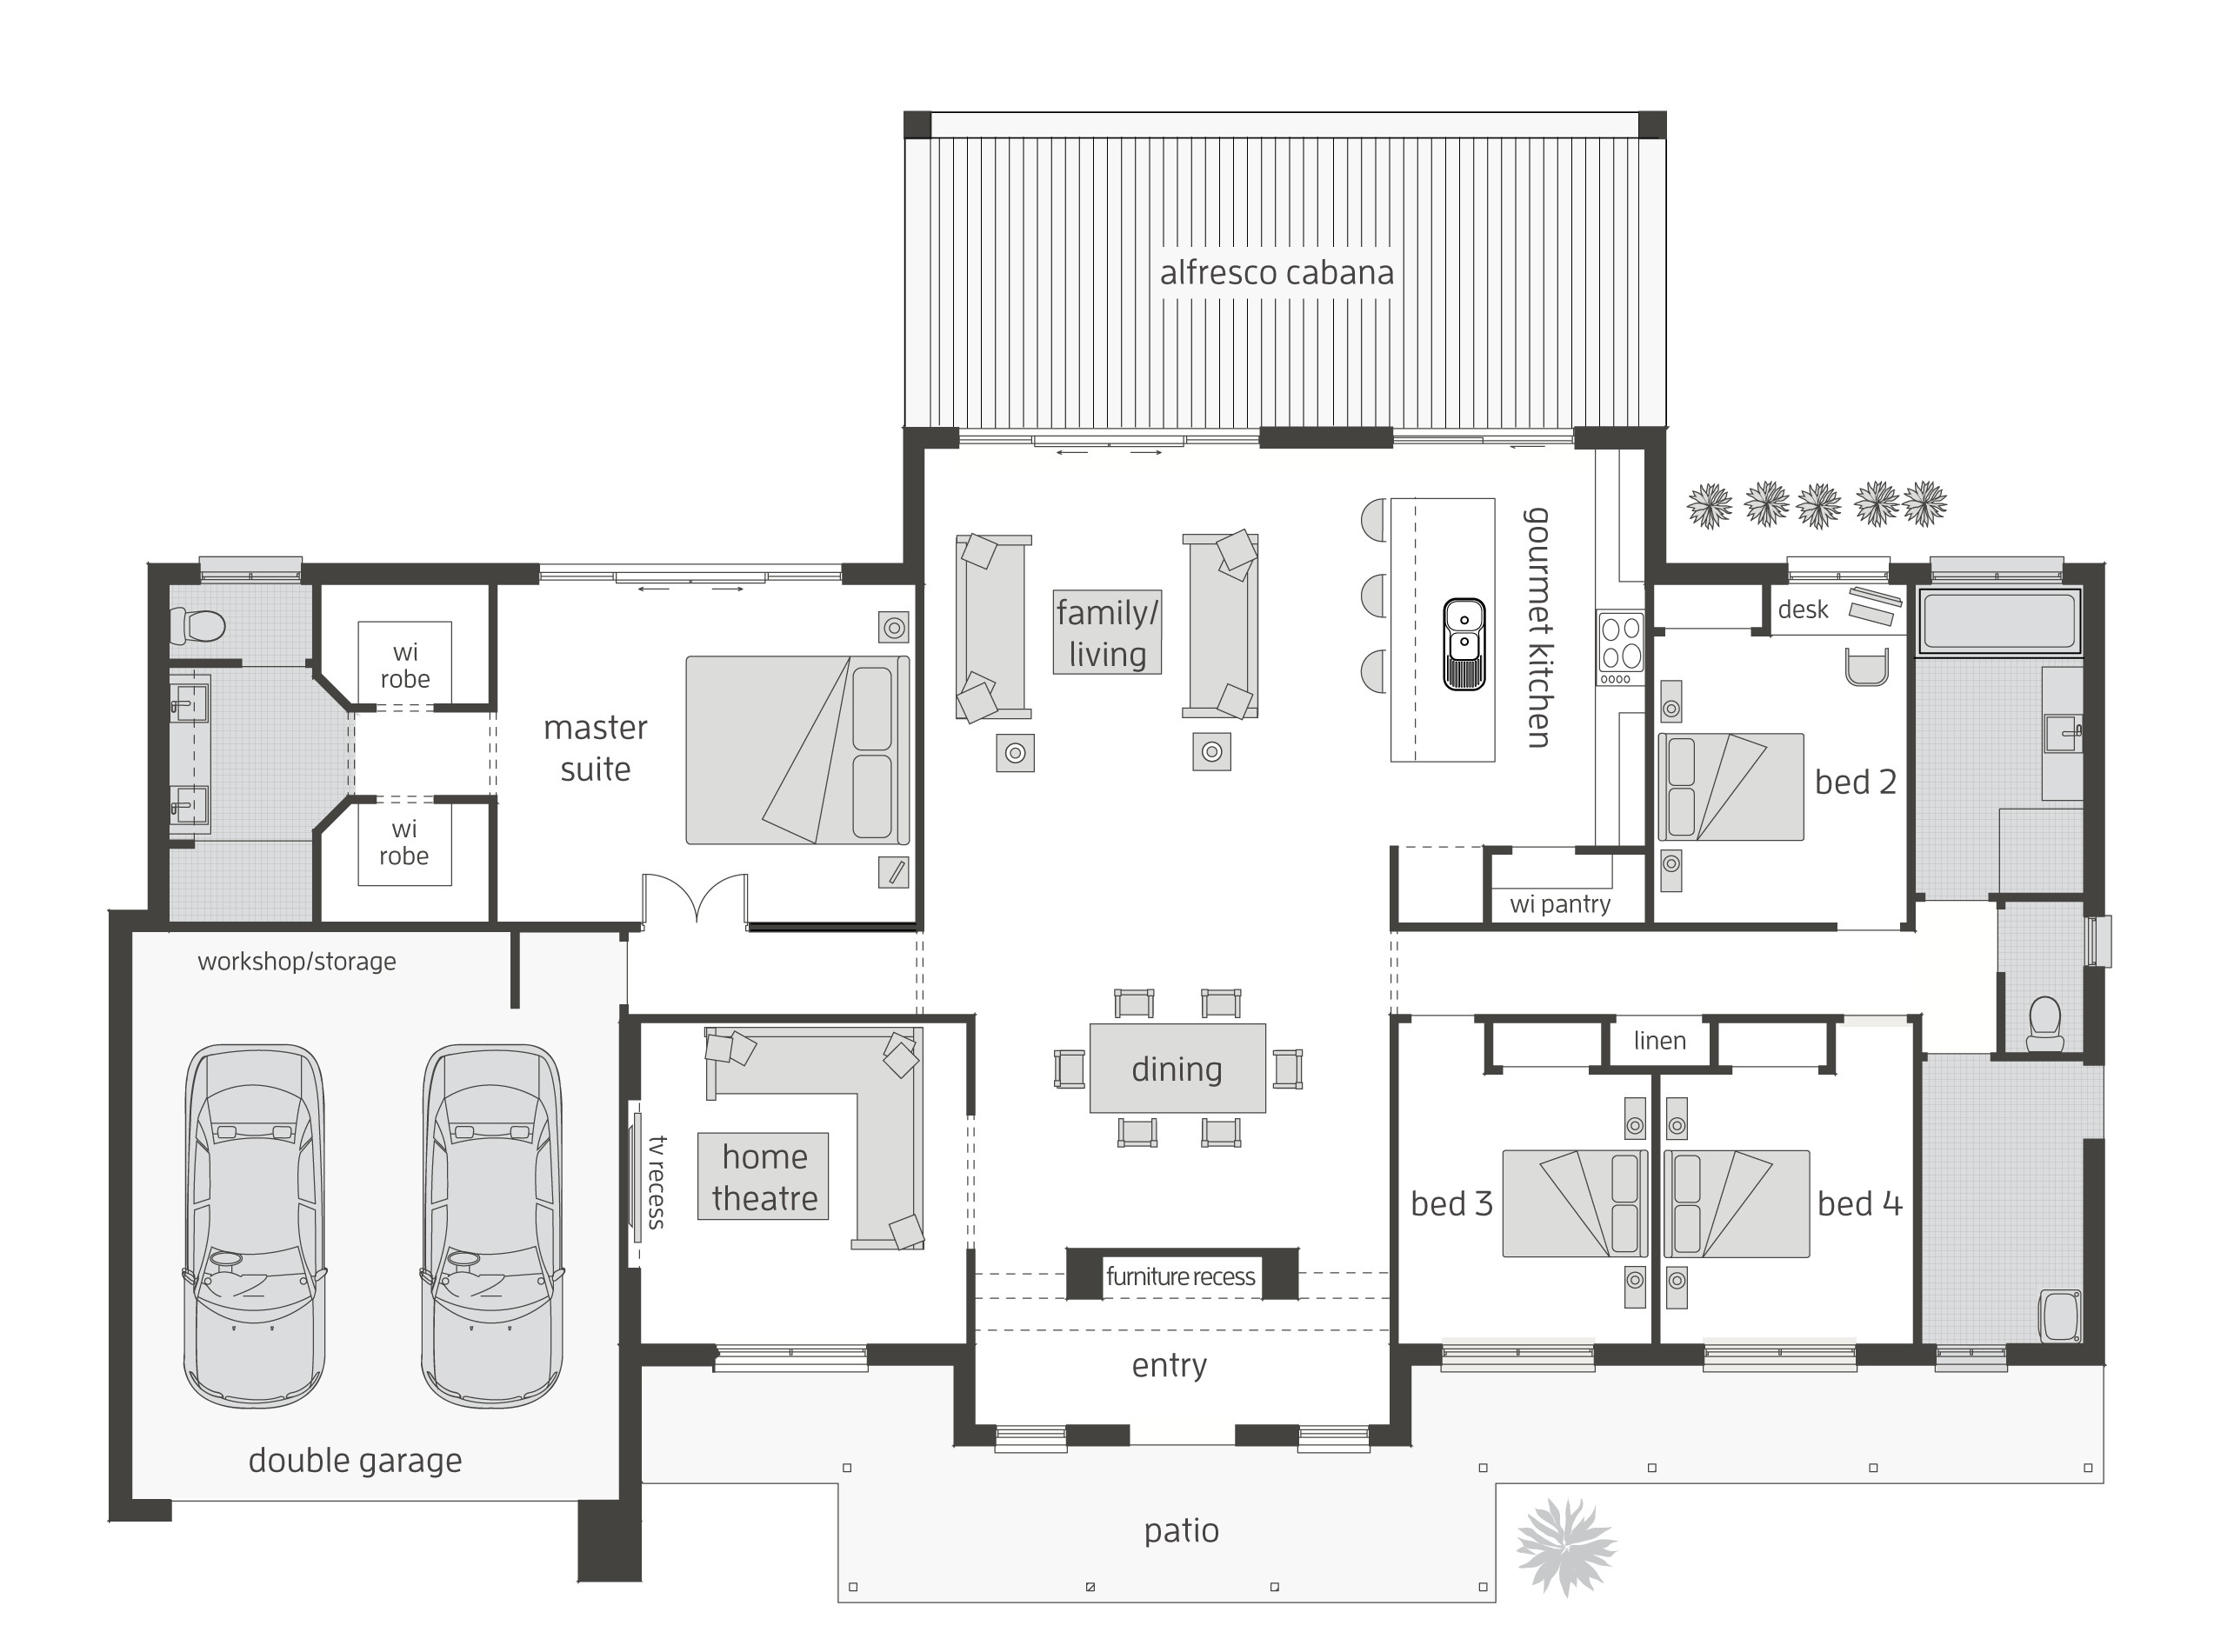 house plans for acreage queensland